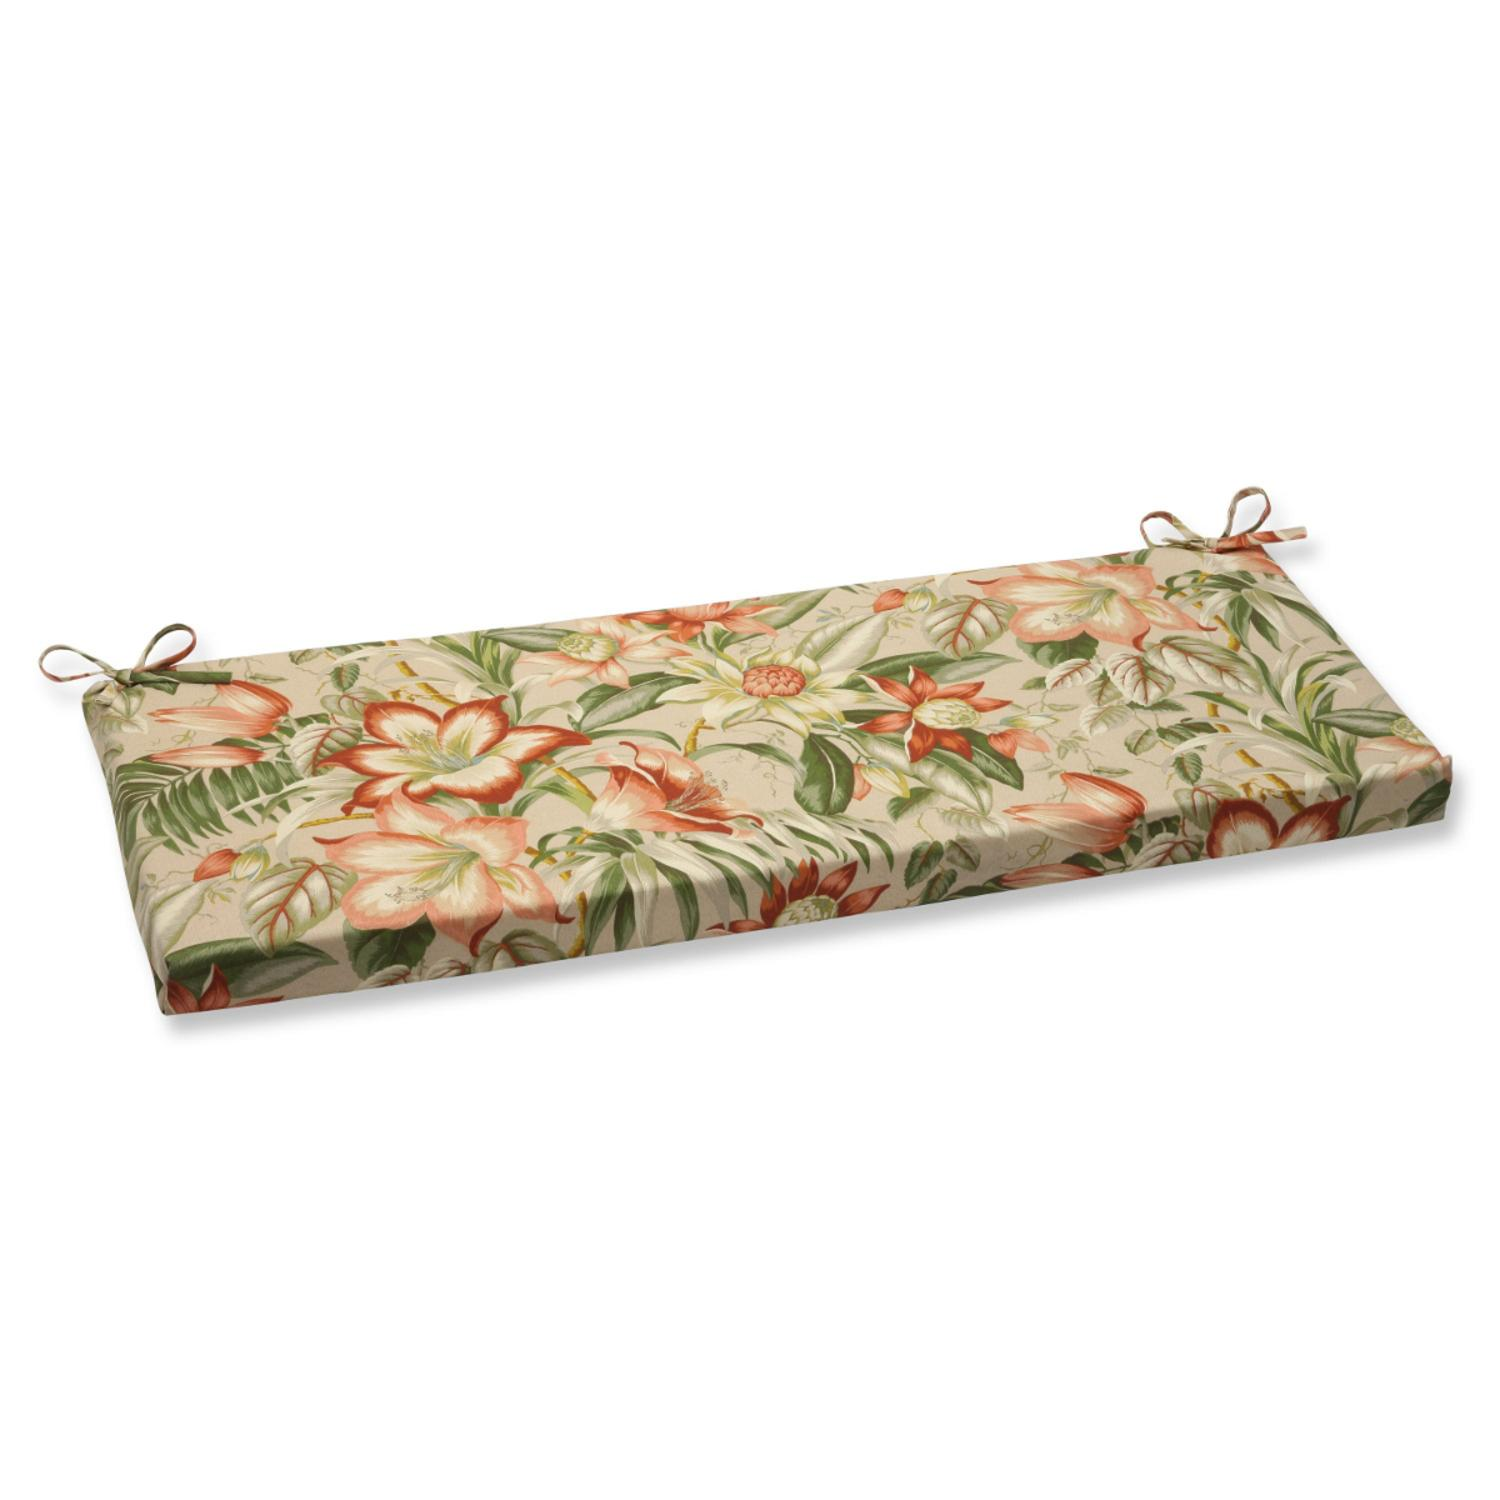 "45"" Green, Tan and Coral Tropical Garden Decorative Outdoor Patio Bench Cushion"